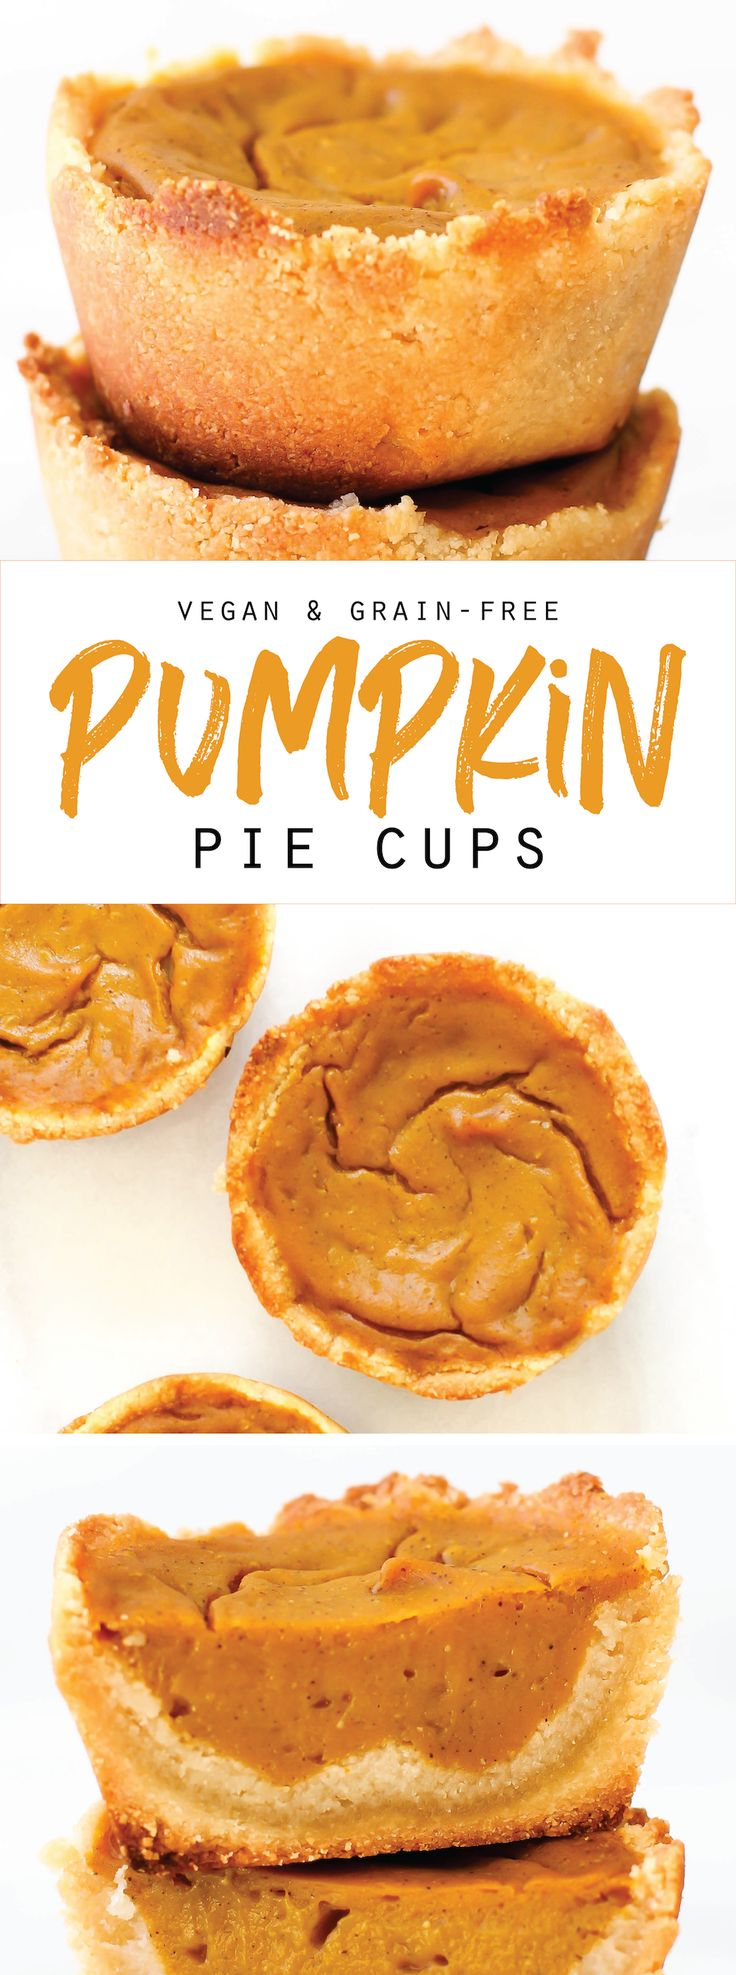 Vegan & Grain-Free Pumpkin Pie Cups/ almond flour crust/ try with my other pinned pumpkin filling